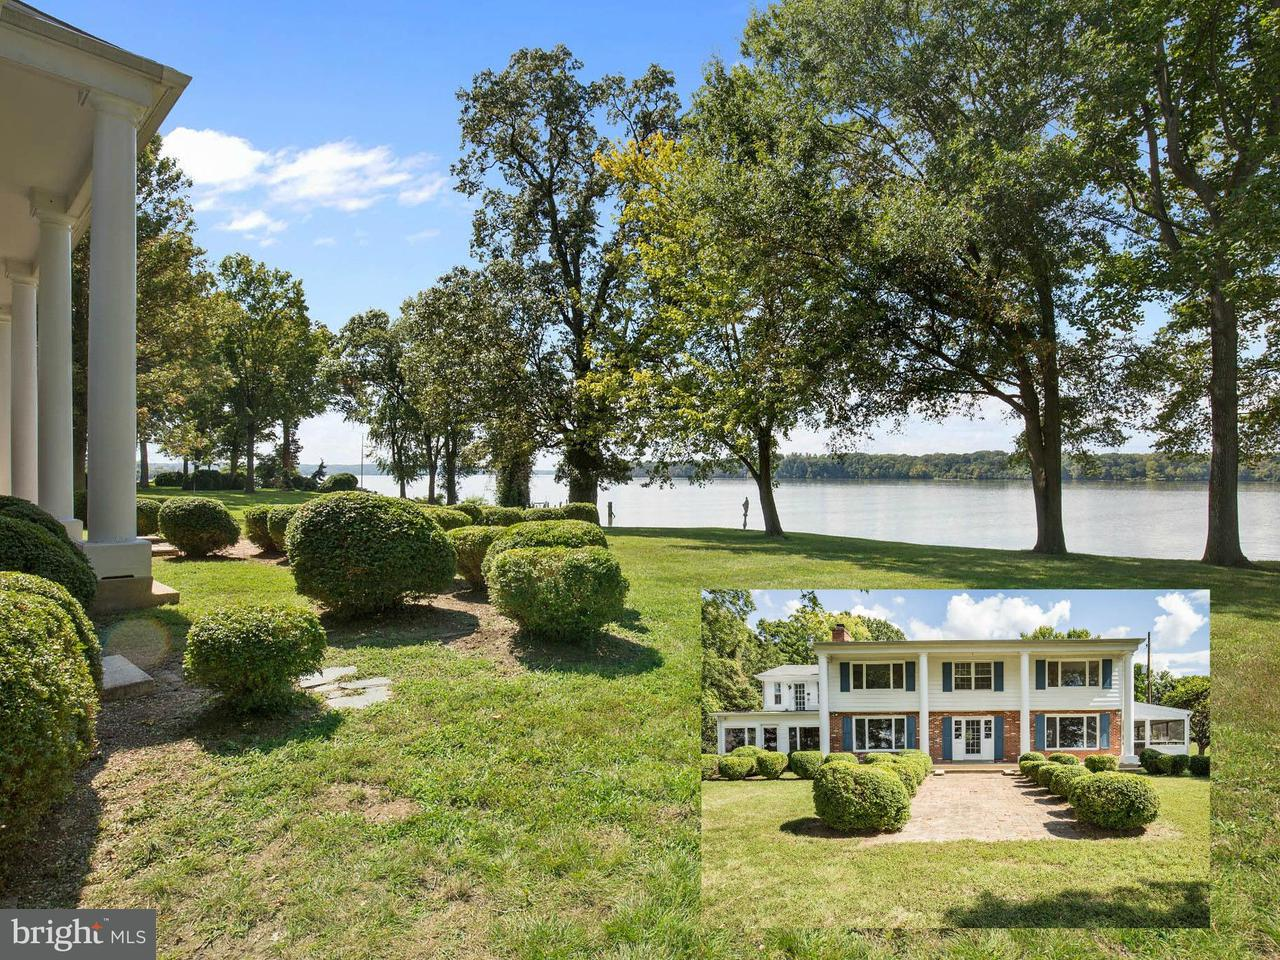 Single Family Home for Sale at 12301 HATTON POINT Road 12301 HATTON POINT Road Fort Washington, Maryland 20744 United States